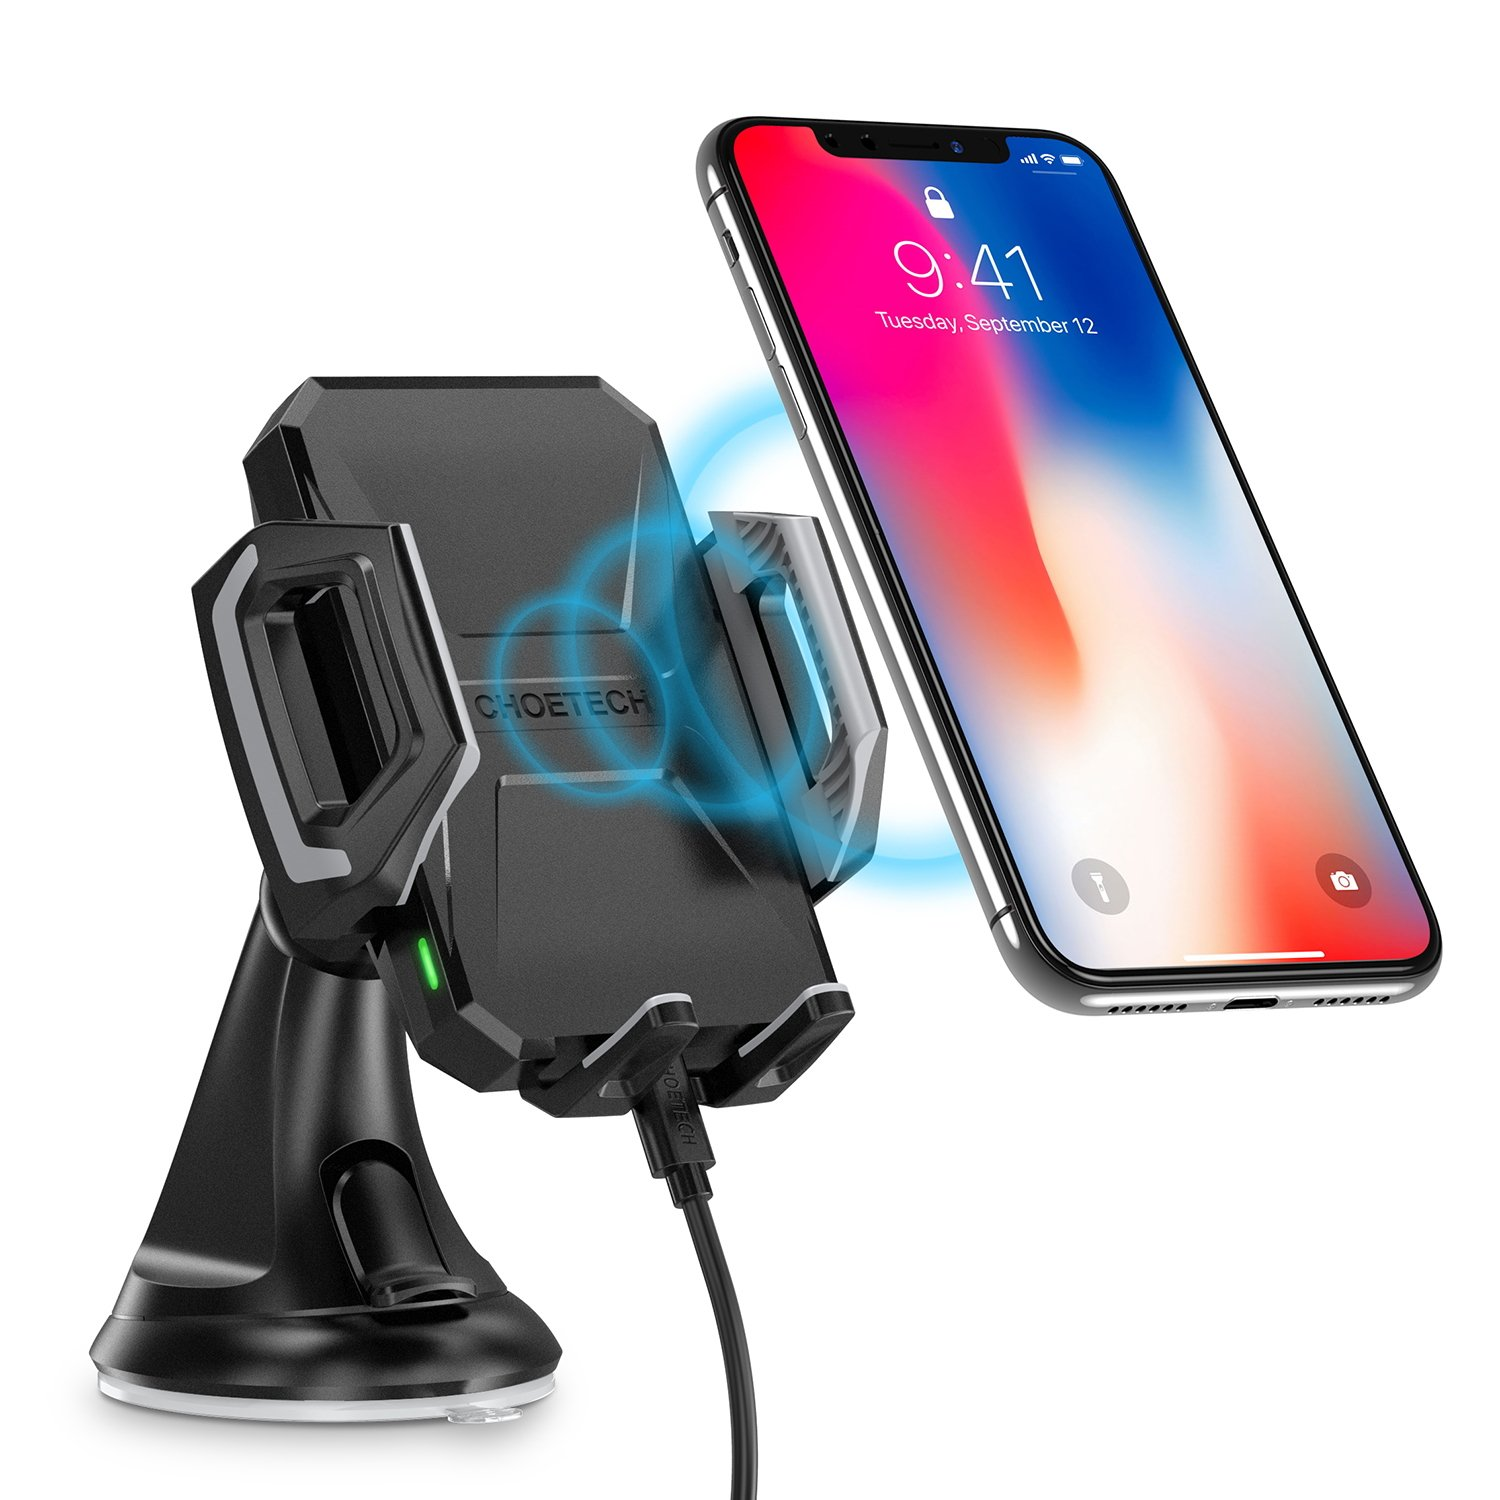 Wireless Car Charger, CHOETECH USB Type C 7.5W Wireless Car Charging Mount Stand Compatible iPhone X/8/8 Plus,10W Fast Wireless Charger Holder Compatible Samsung Galaxy S9/S9+/S8/S8+/Note 9/Note 8/S7